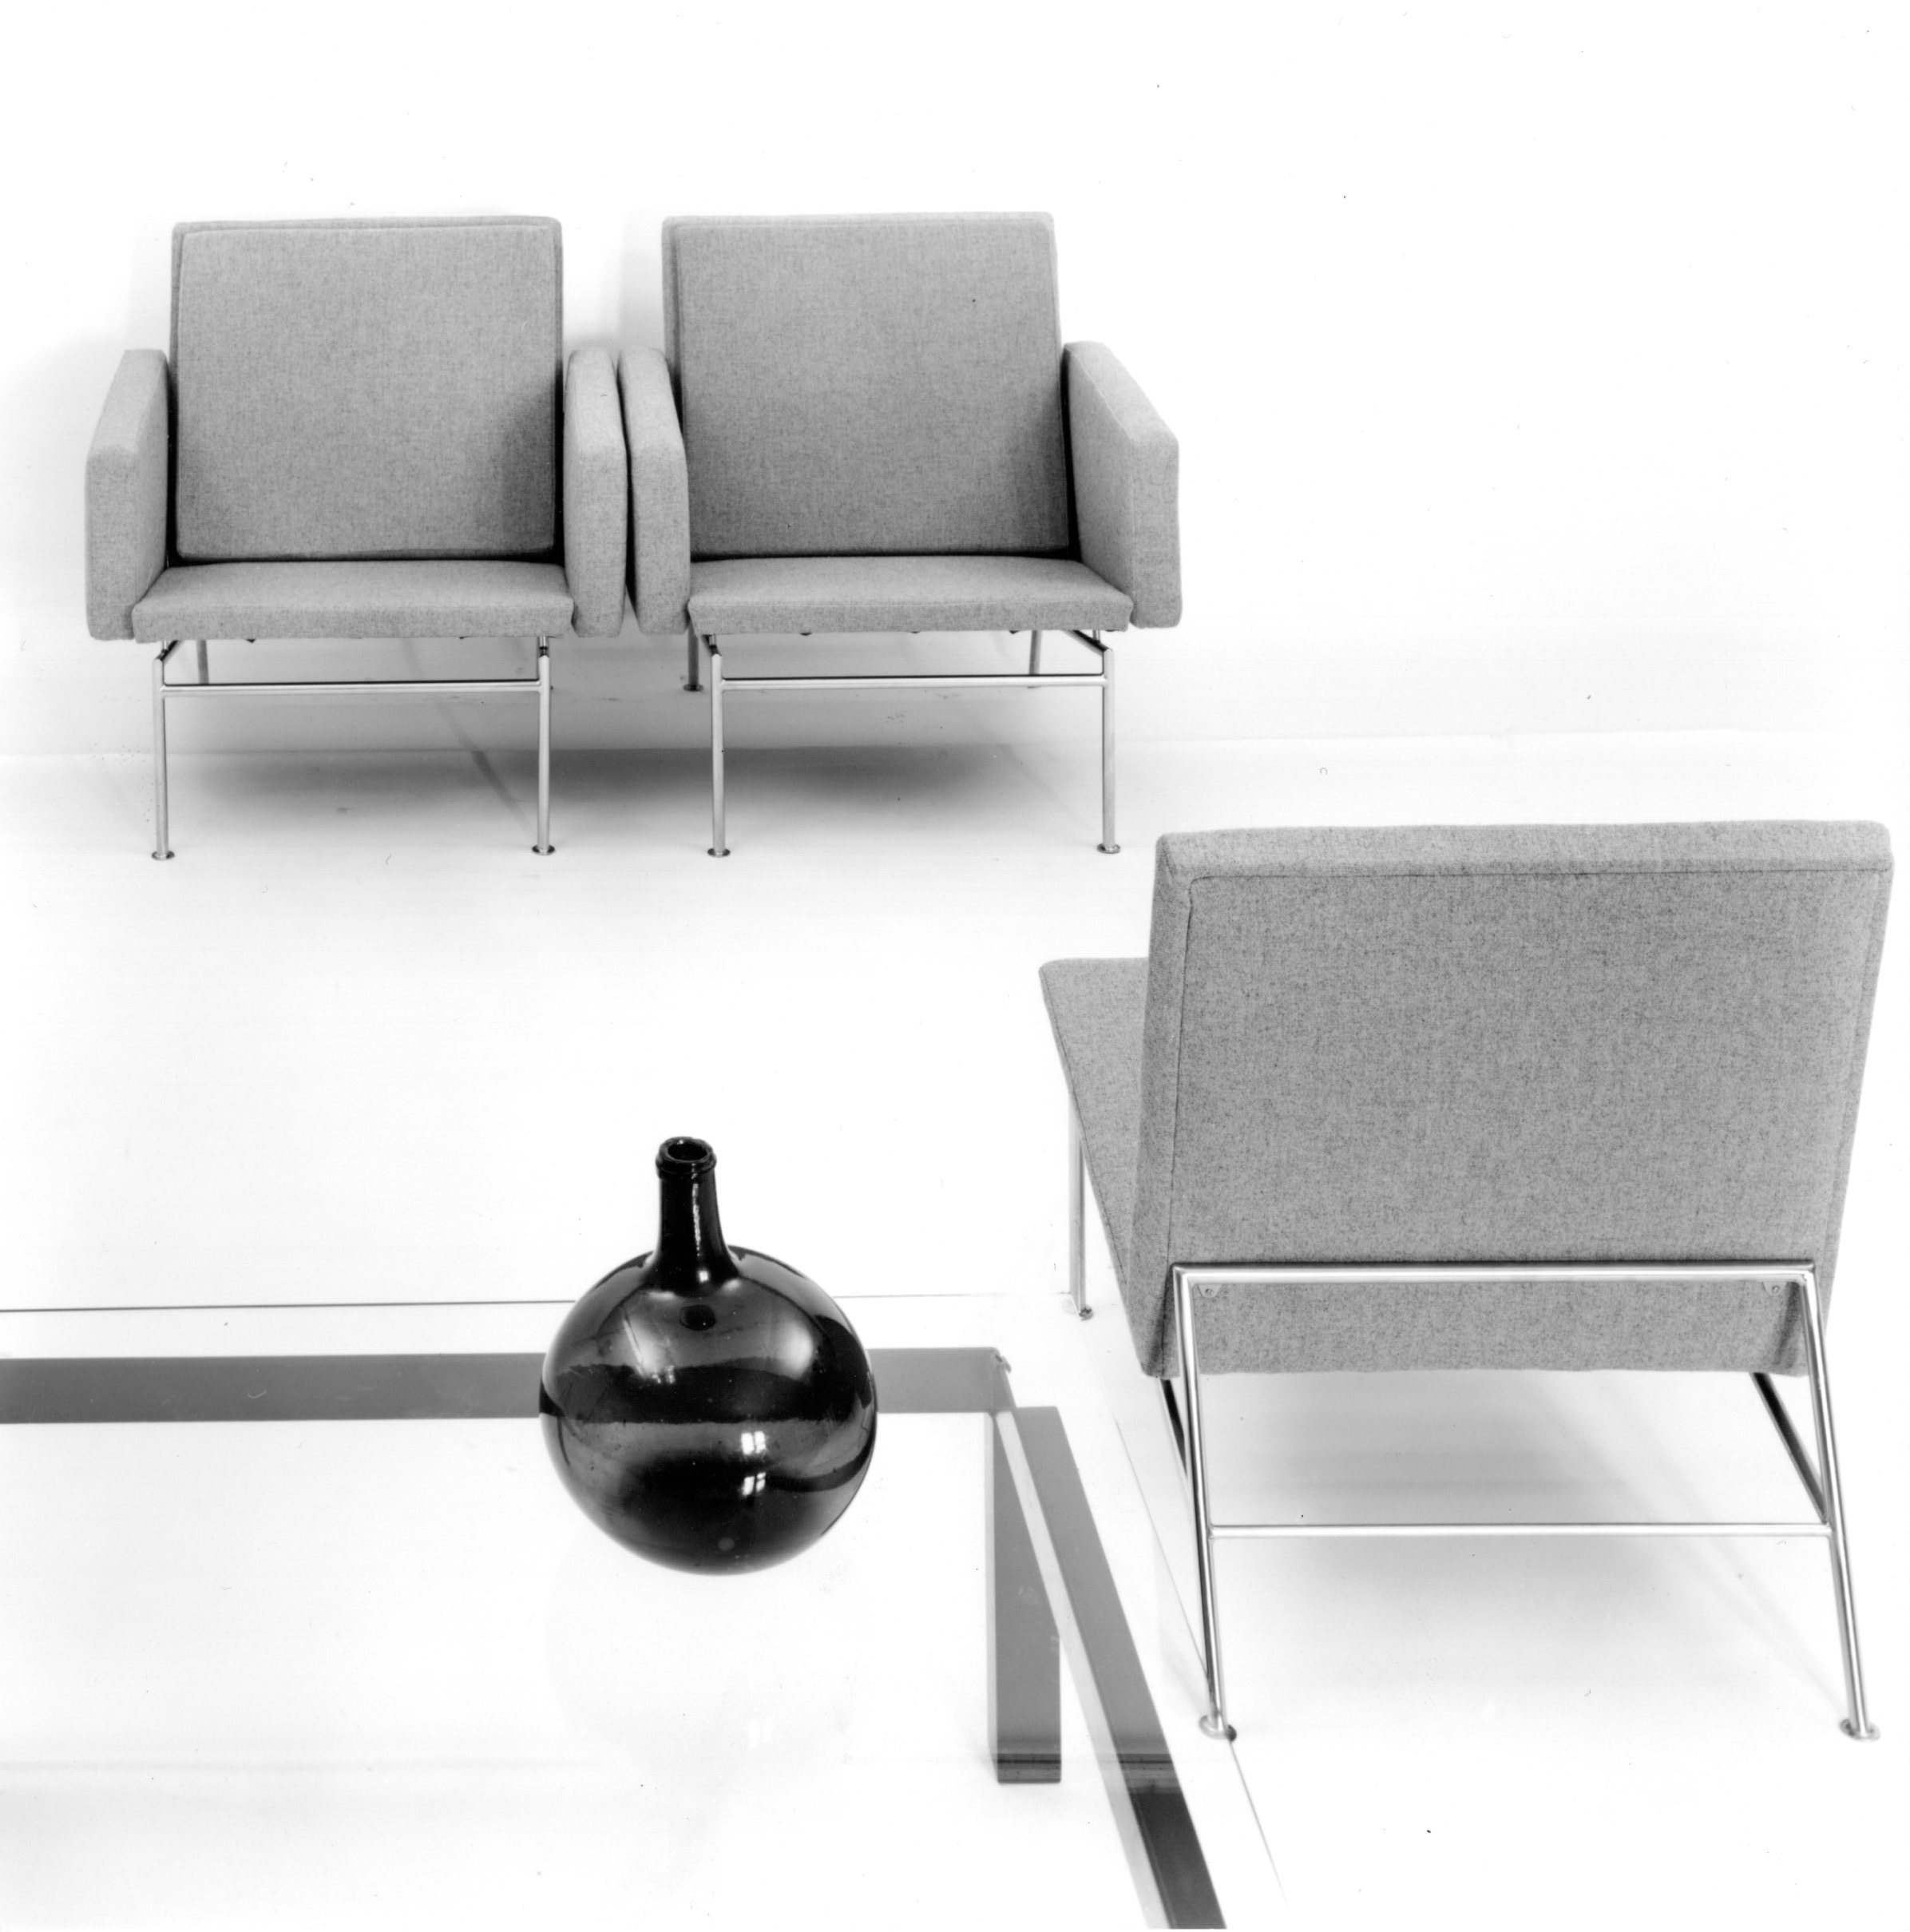 Designed in collaboration with Theo Ruth, Frans Bergs & Jacques Weijenbergh. Photo Karro Schumacher